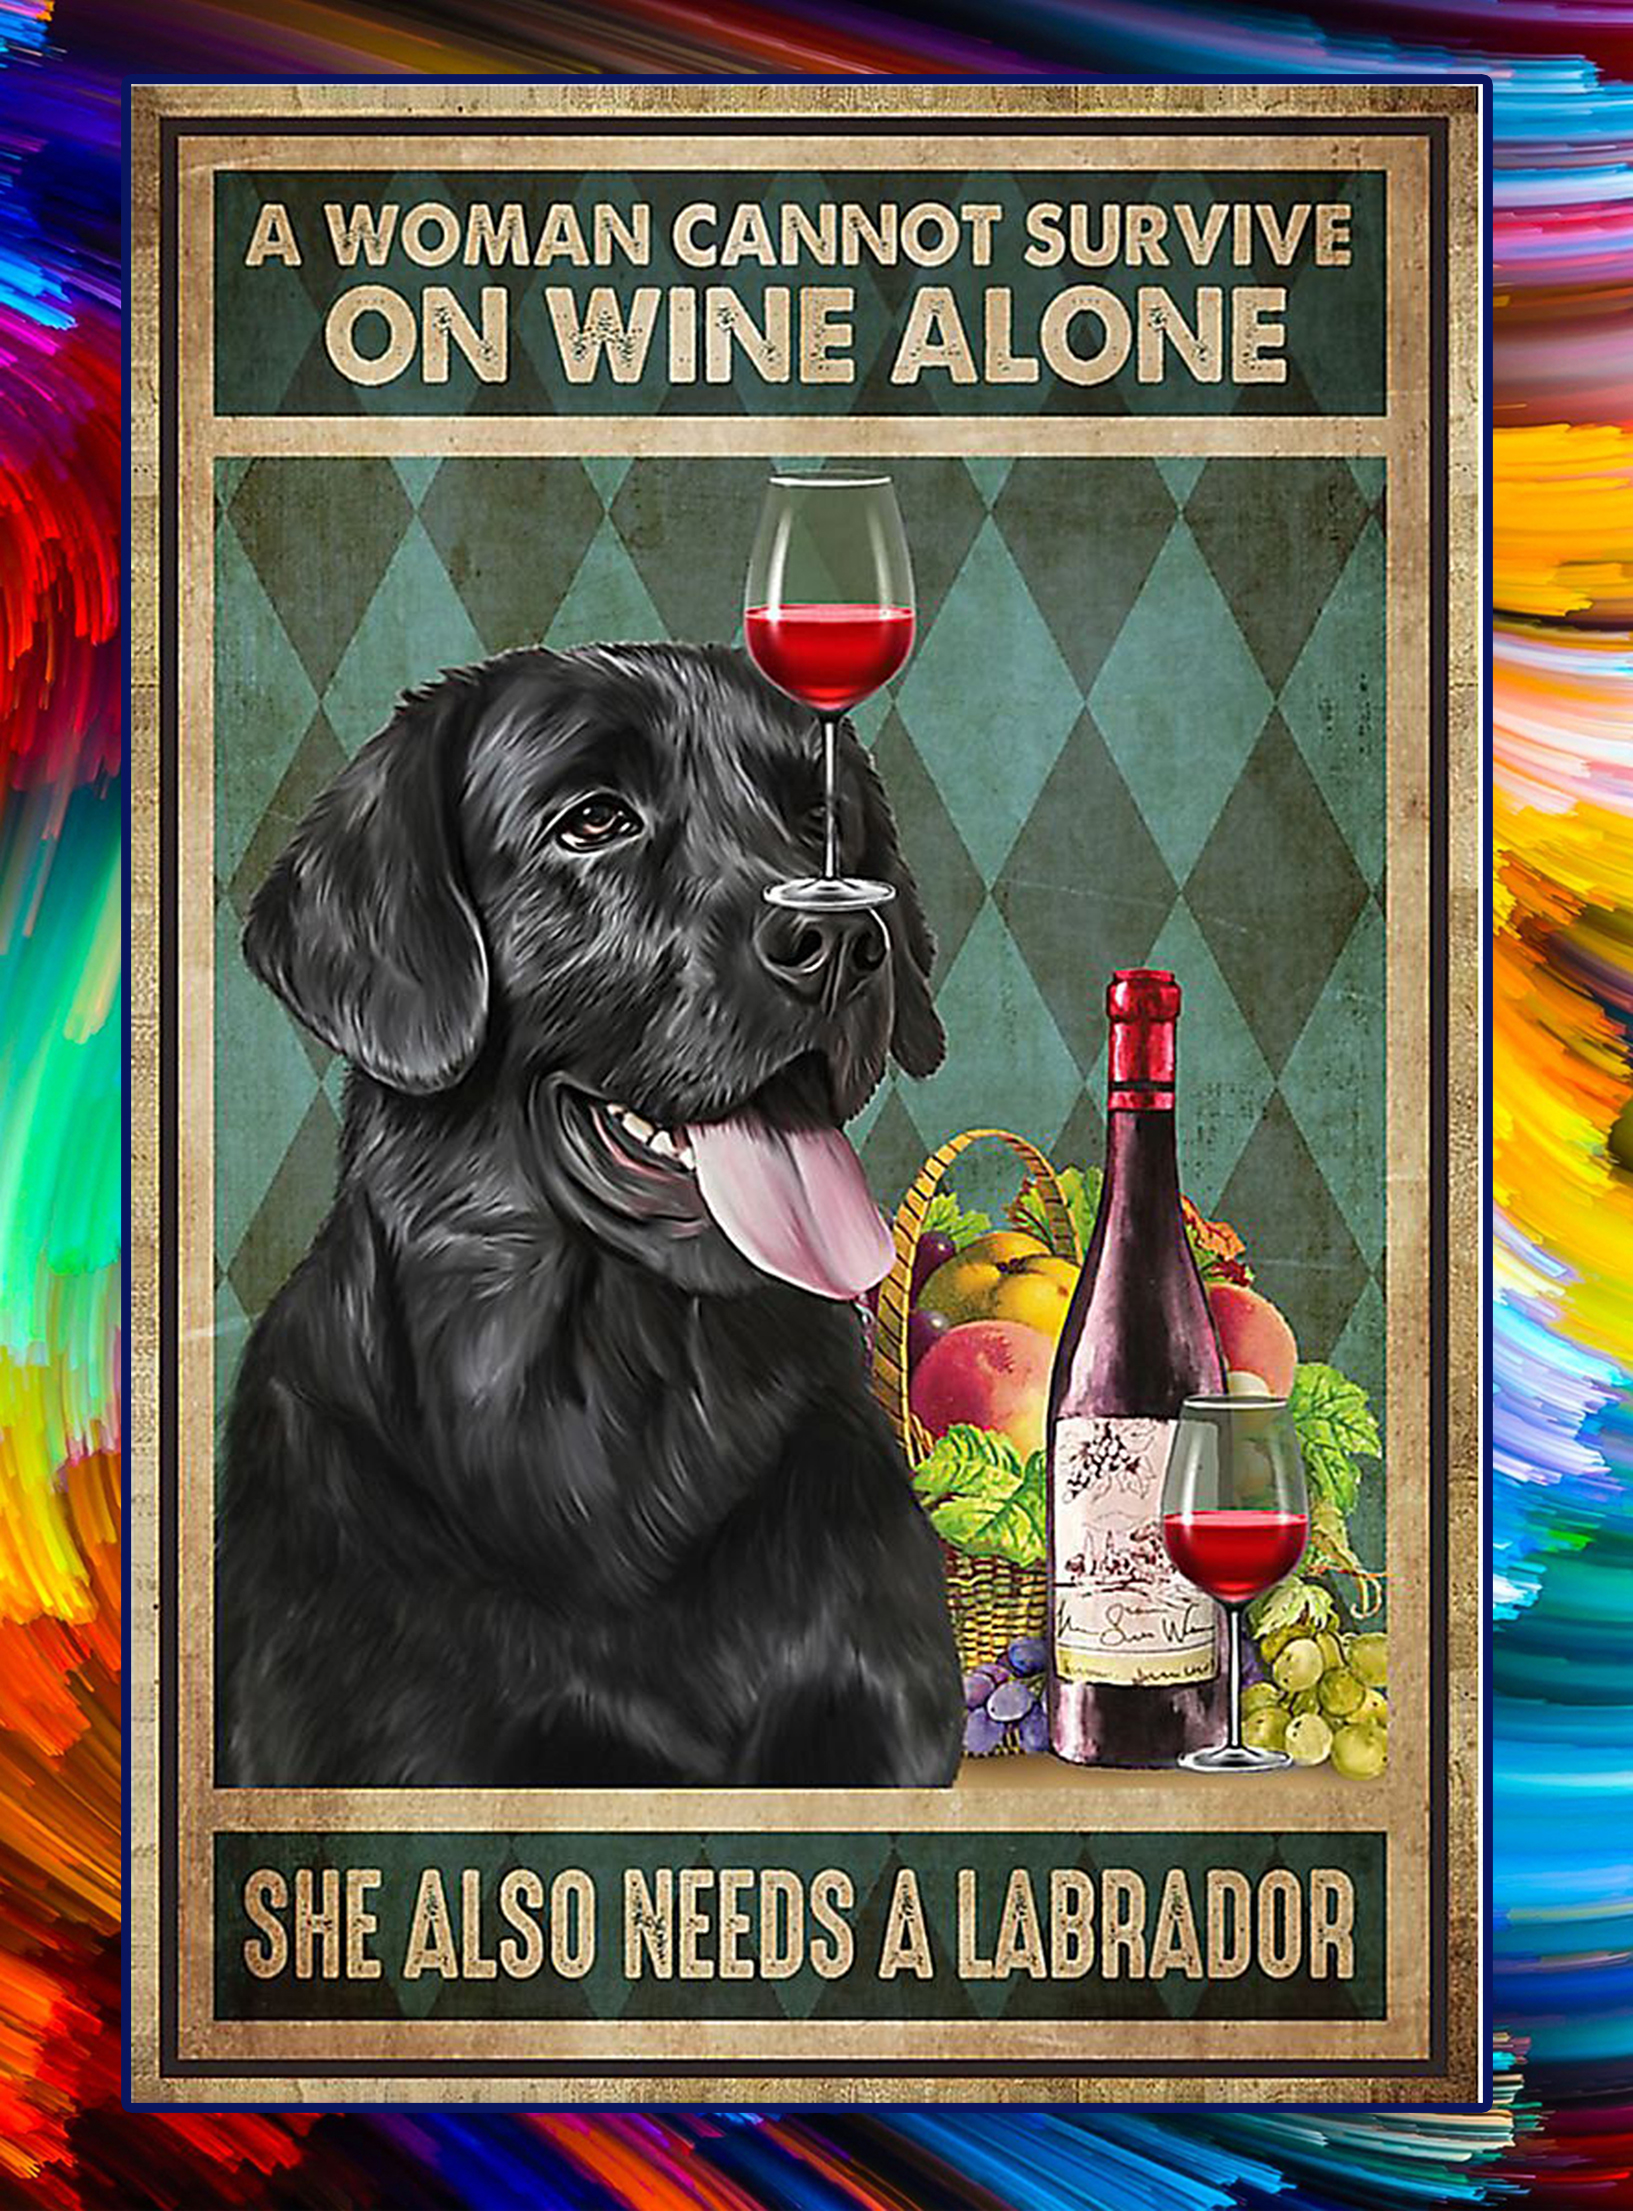 A woman cannot survive on wine alone she also needs a labrador poster - A3